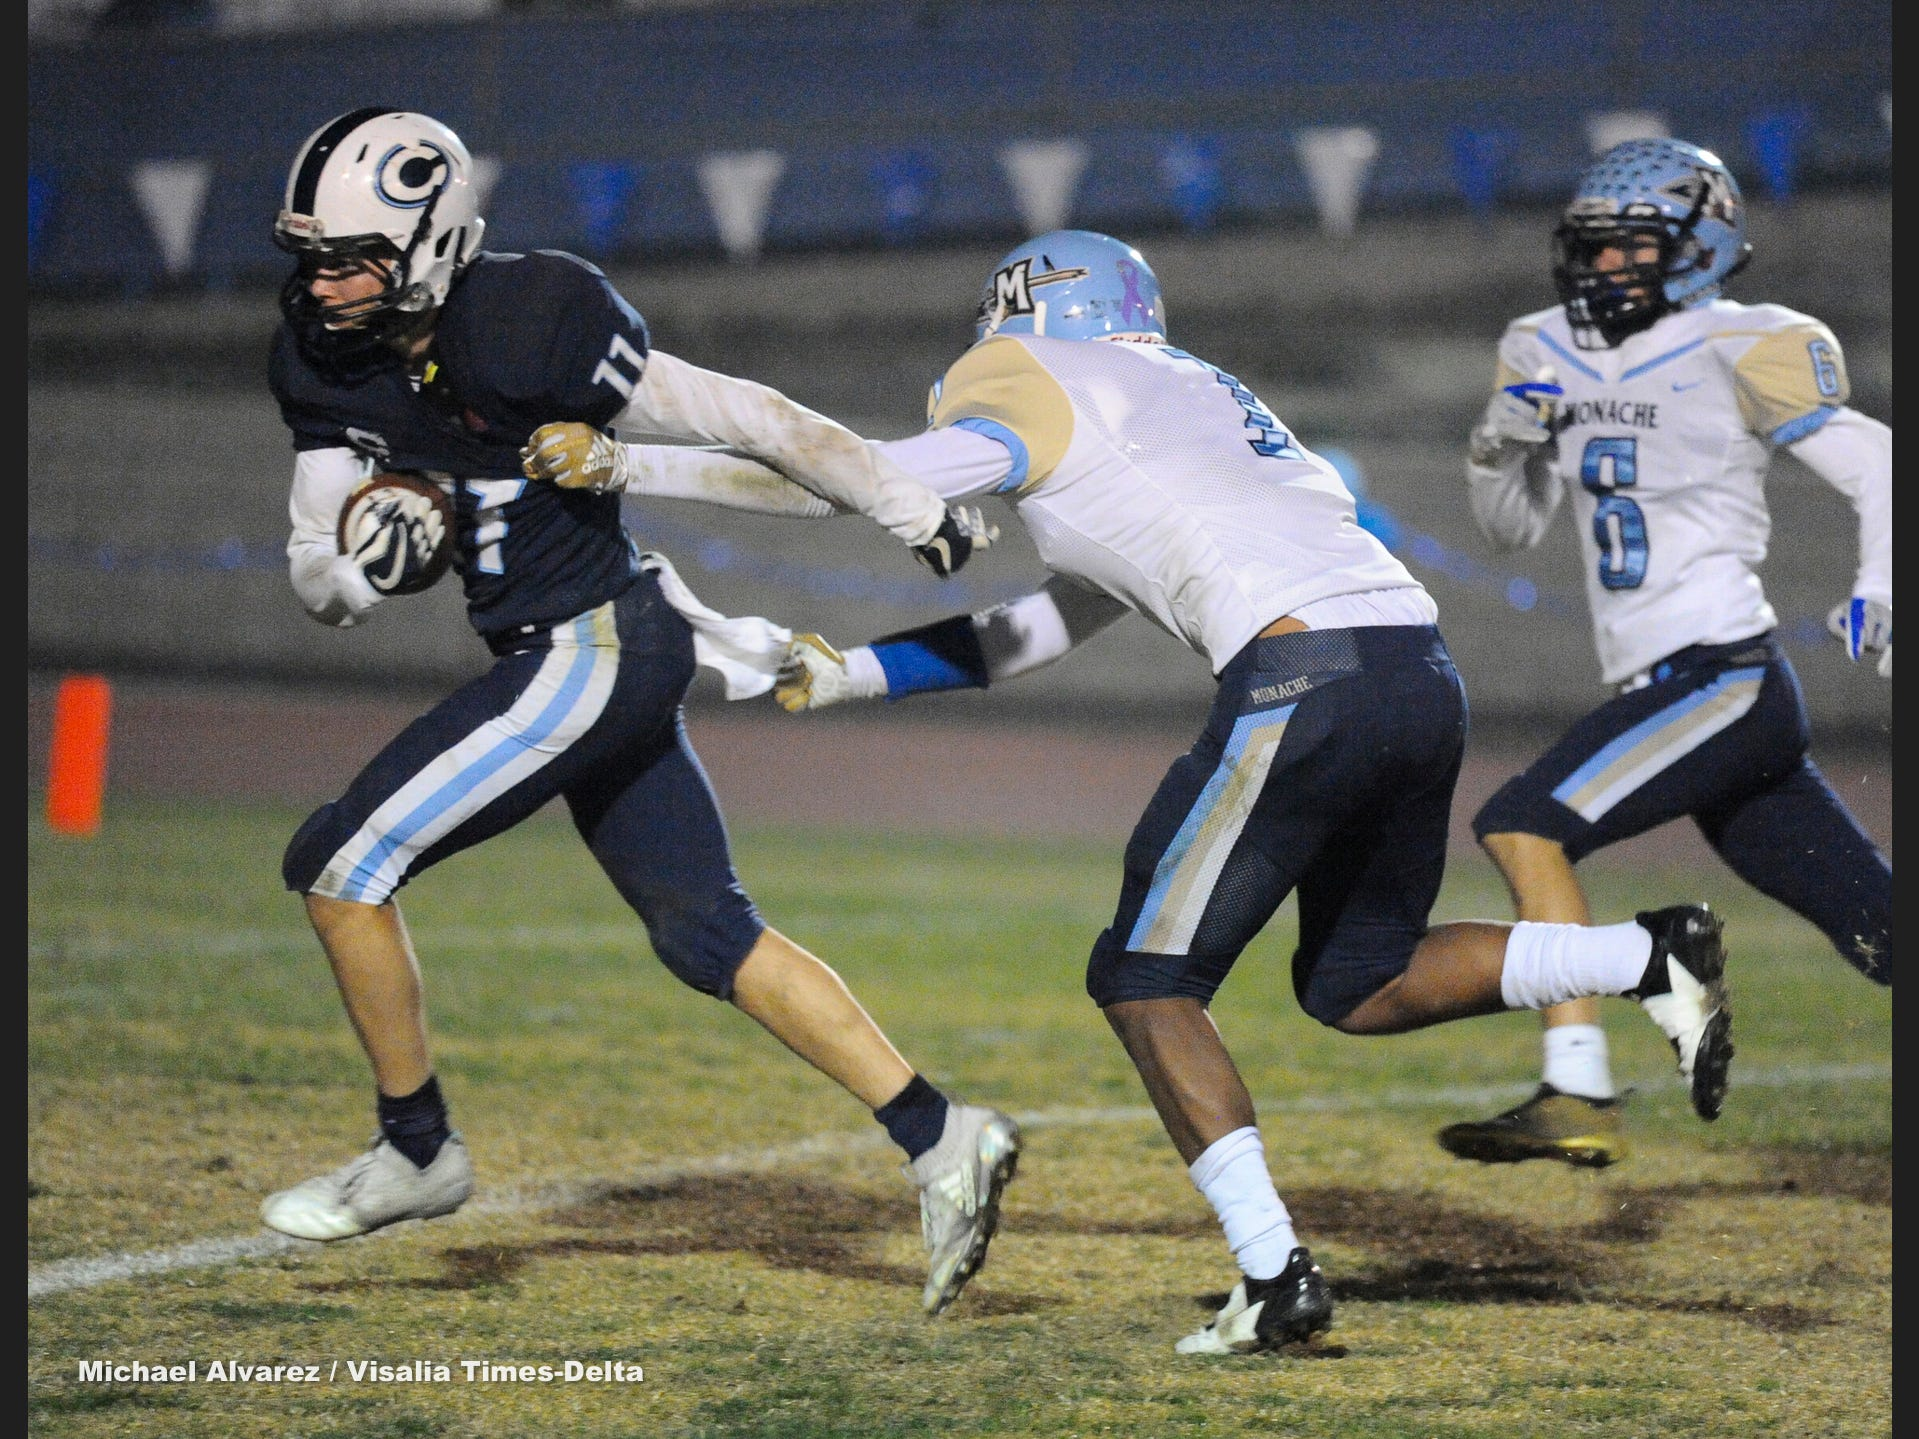 Central Valley Christian Simon Tevelde brushes off Monache during the Central Section Division IV playoff on November 16, 2018.